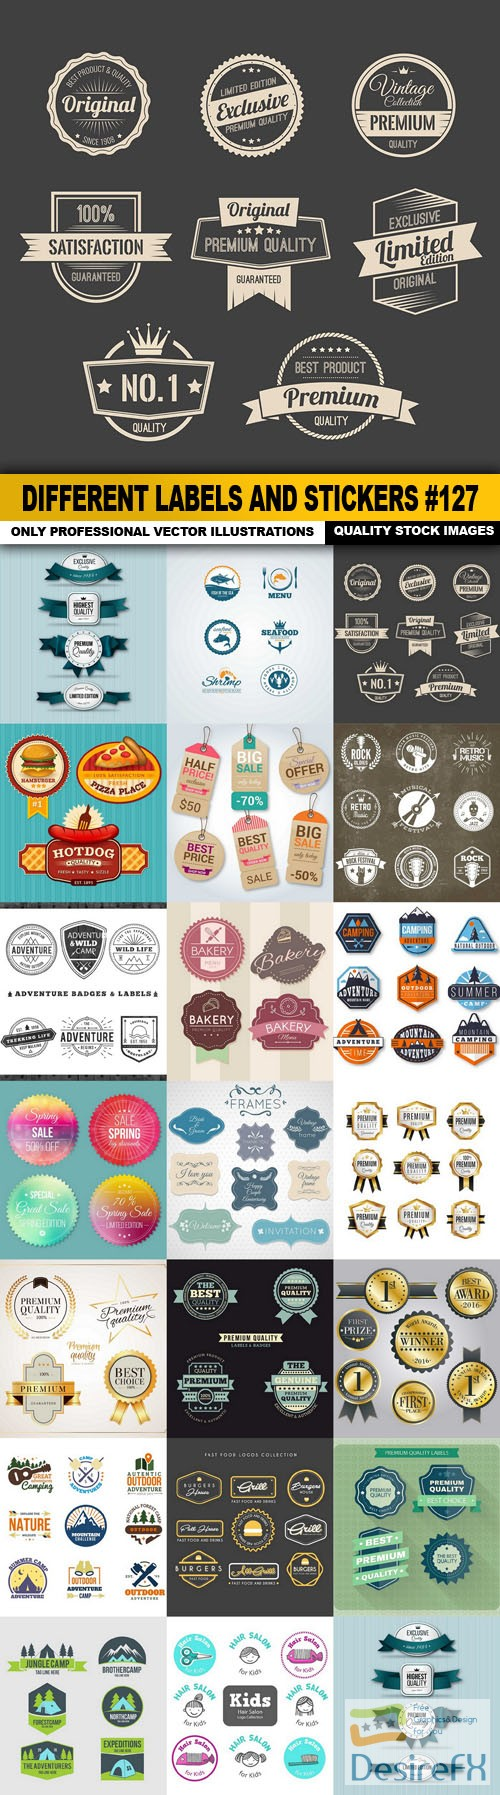 stock-vectors - Different Labels And Stickers #127 - 20 Vector